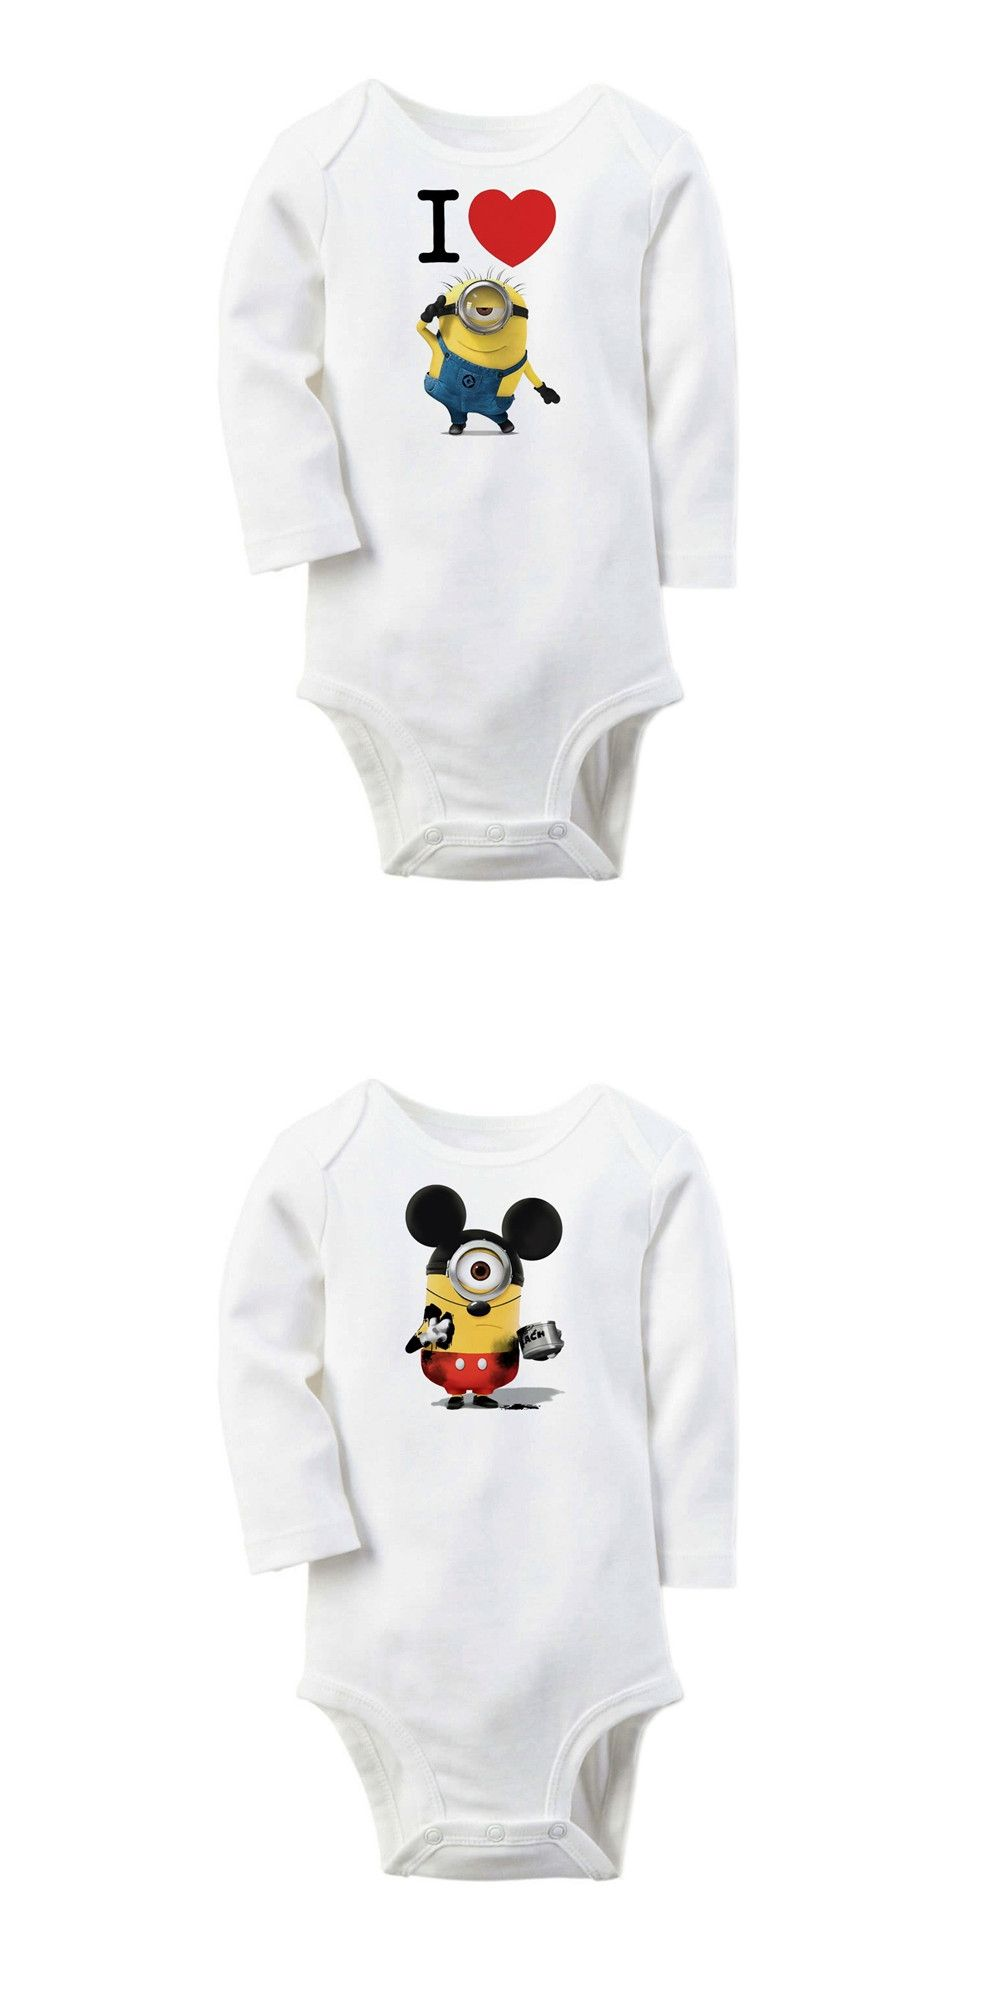 7b2612157 Winter Baby Body Suit Minions Printed Rompers new born Baby Body ...